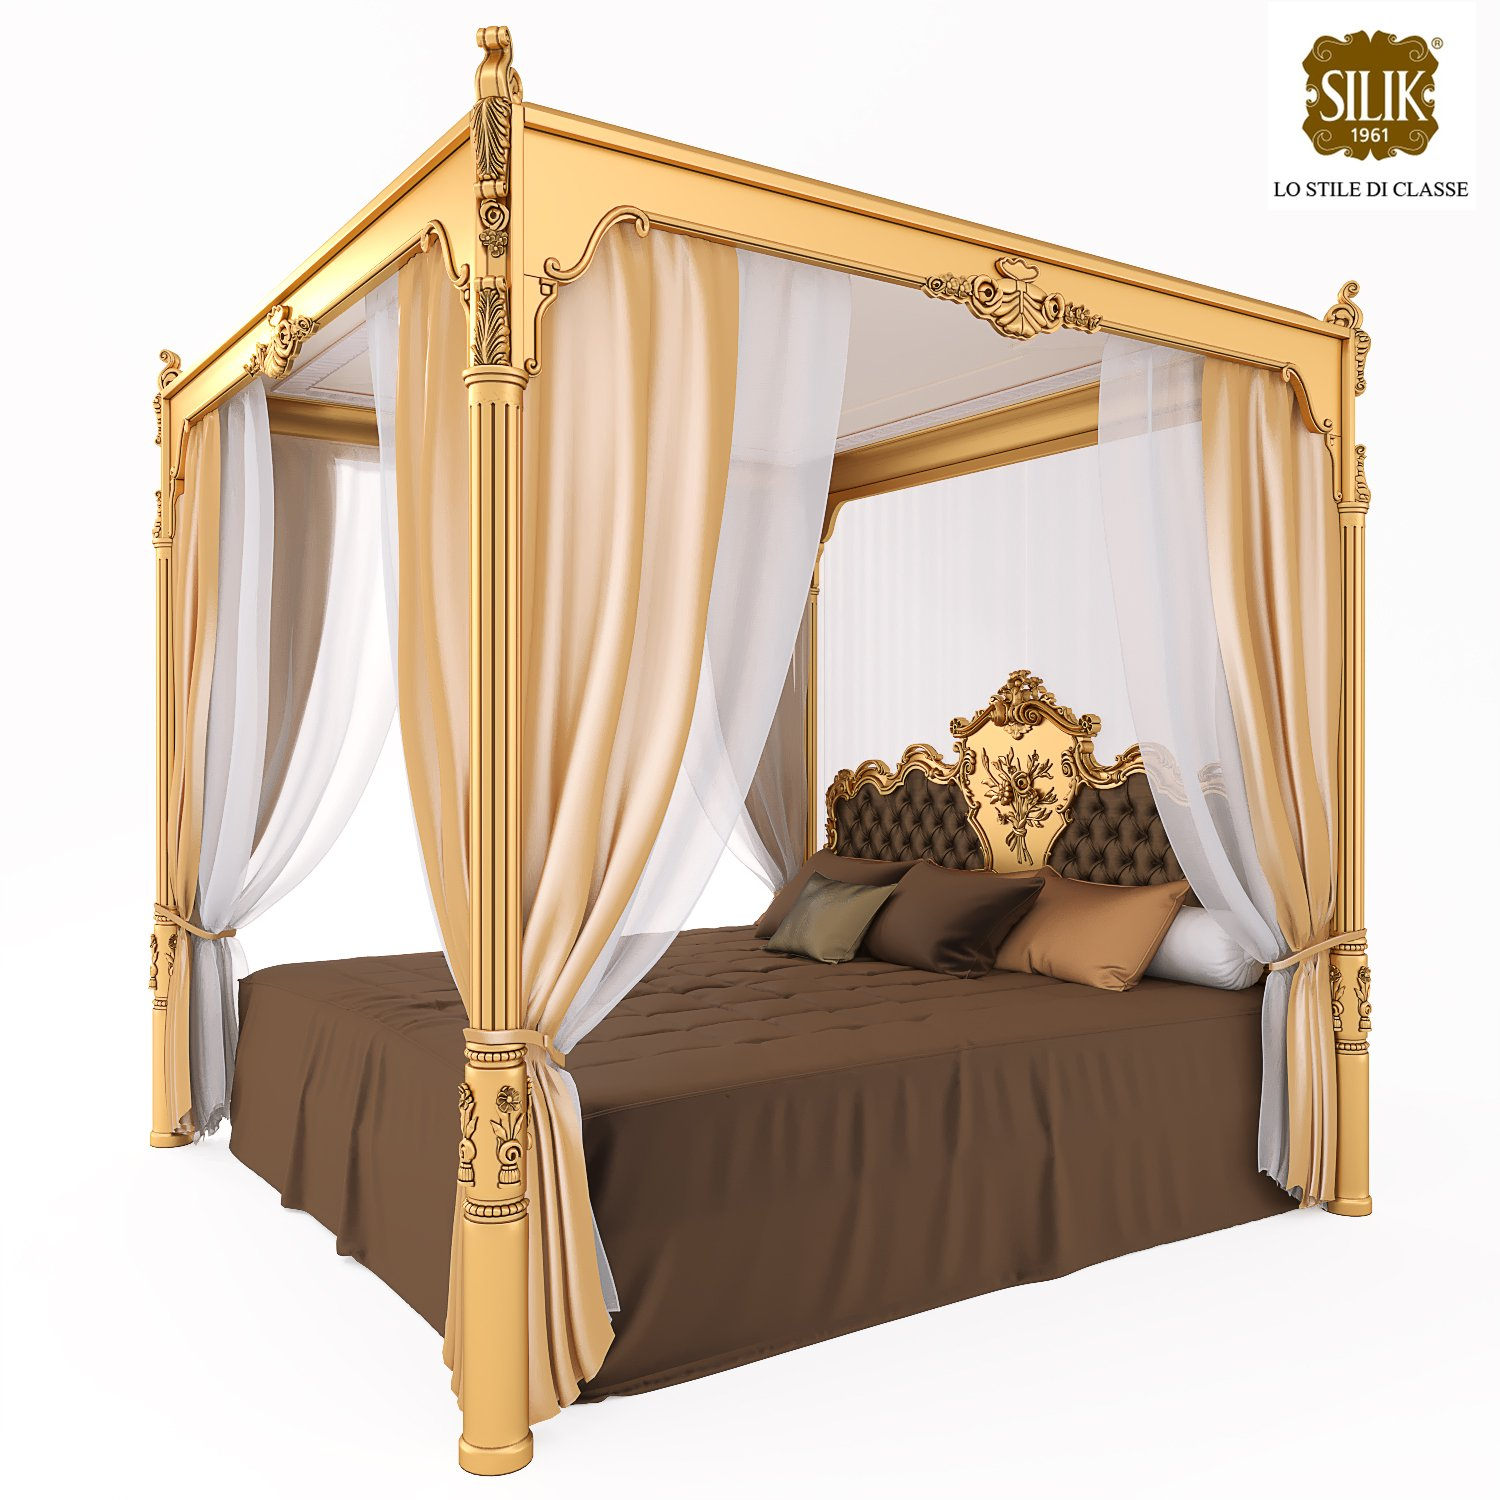 Silik Venere King Size Bed with Canopy Modèle 3D in Chambre à ...